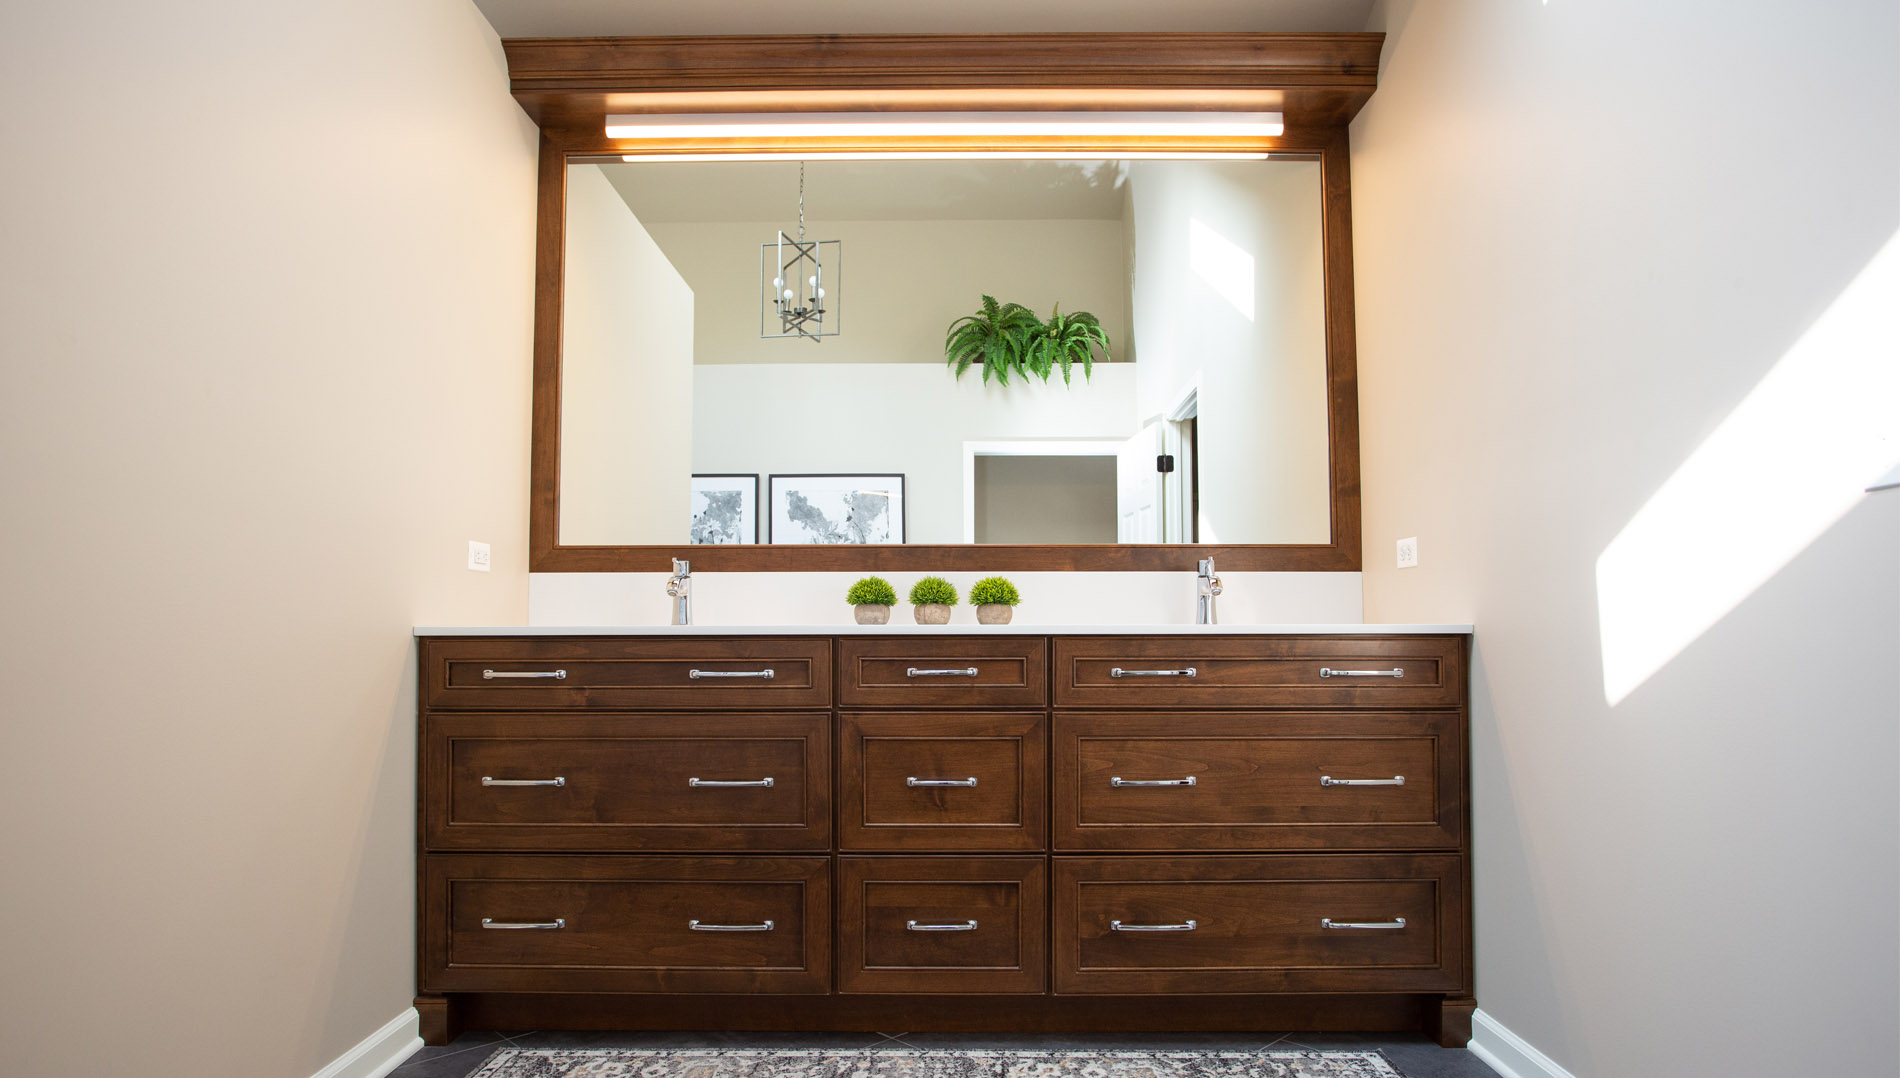 Large stained alder wood double vanity with framed mirror and light bar.